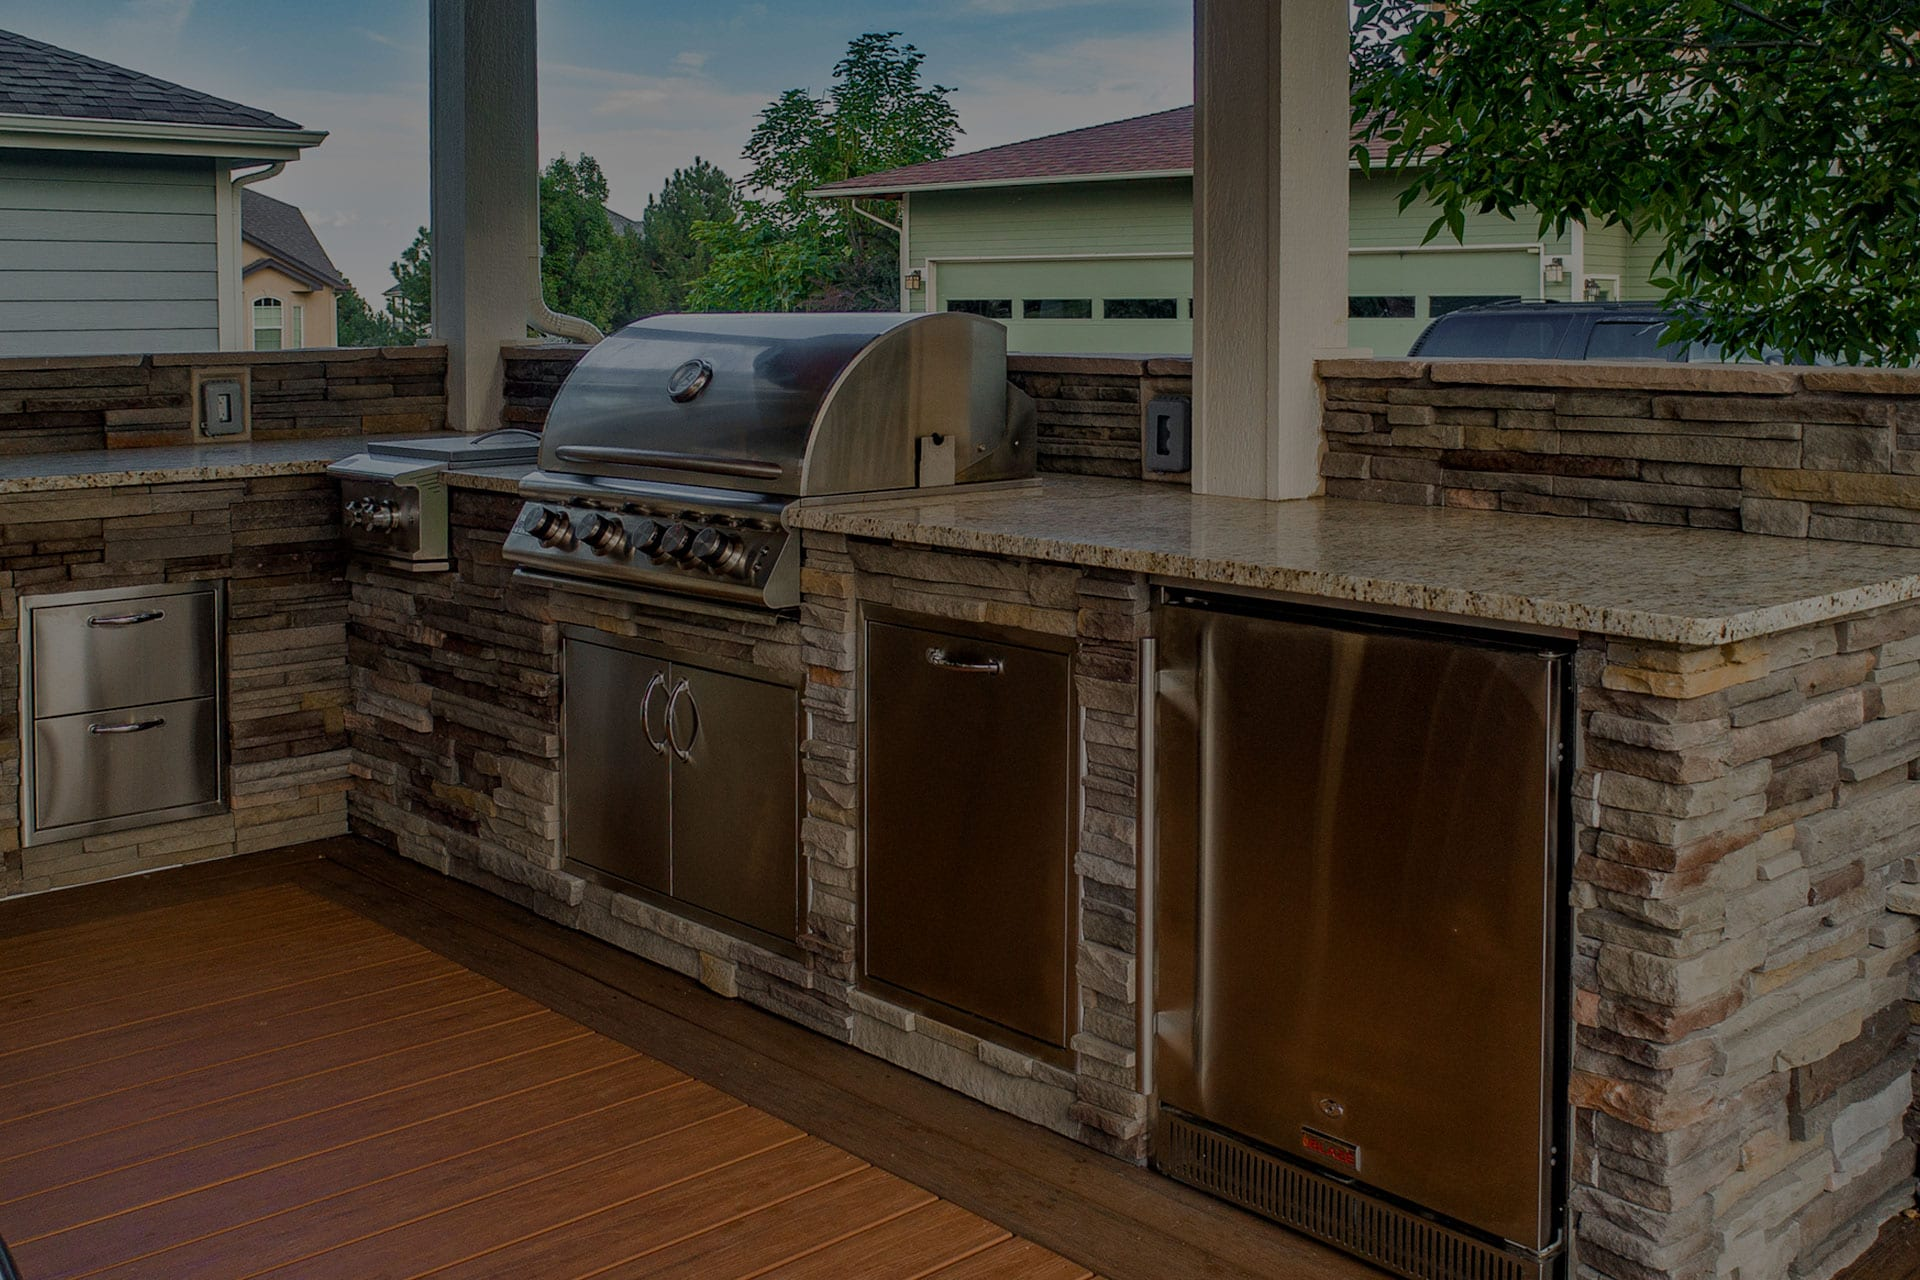 outdoor kitchen & bbq